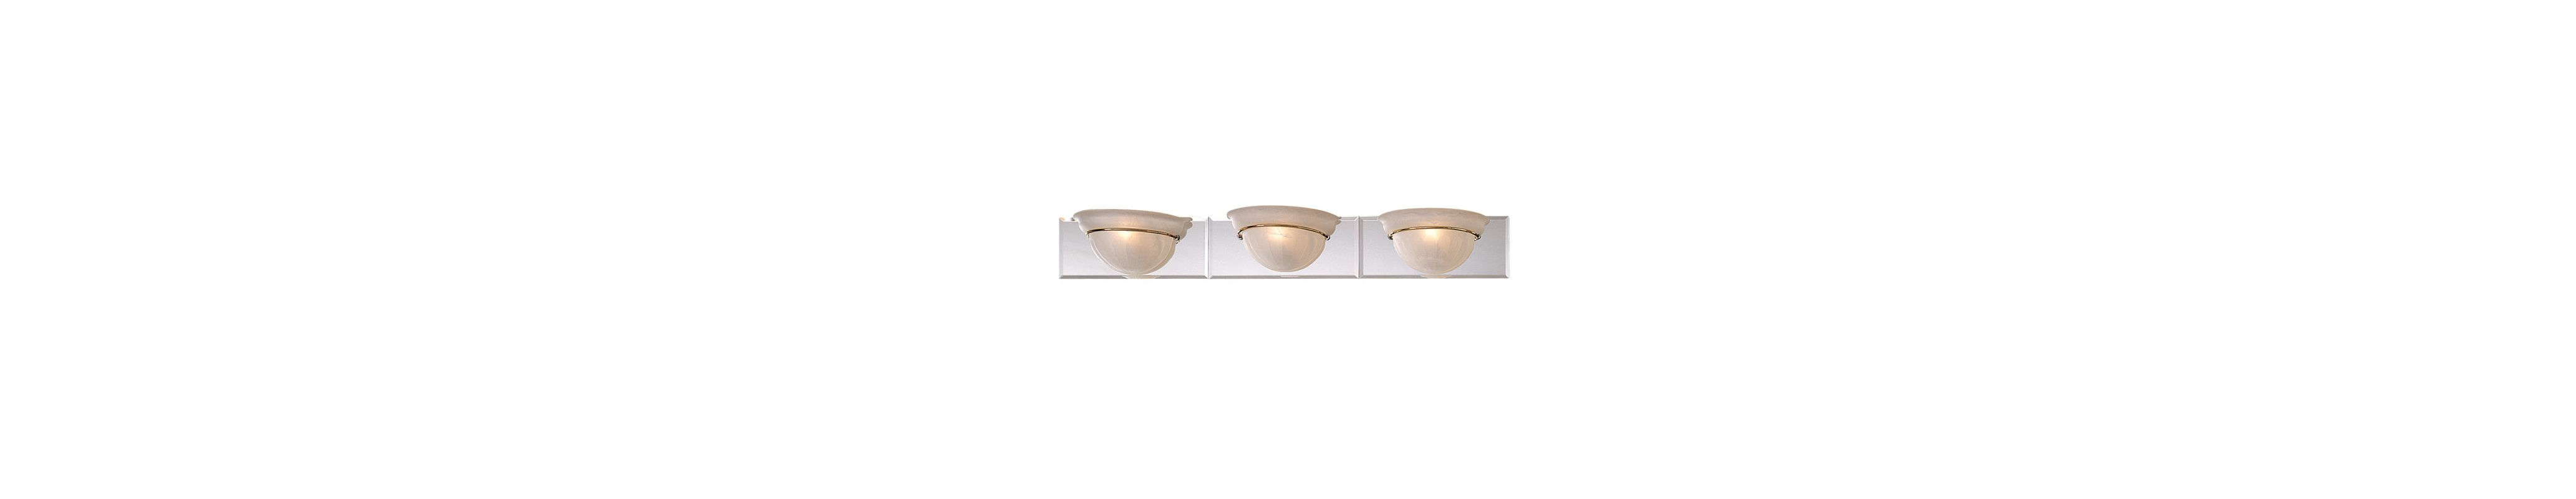 "Dolan Designs 443 36"" Wide Bathroom Fixture from the Rutland"